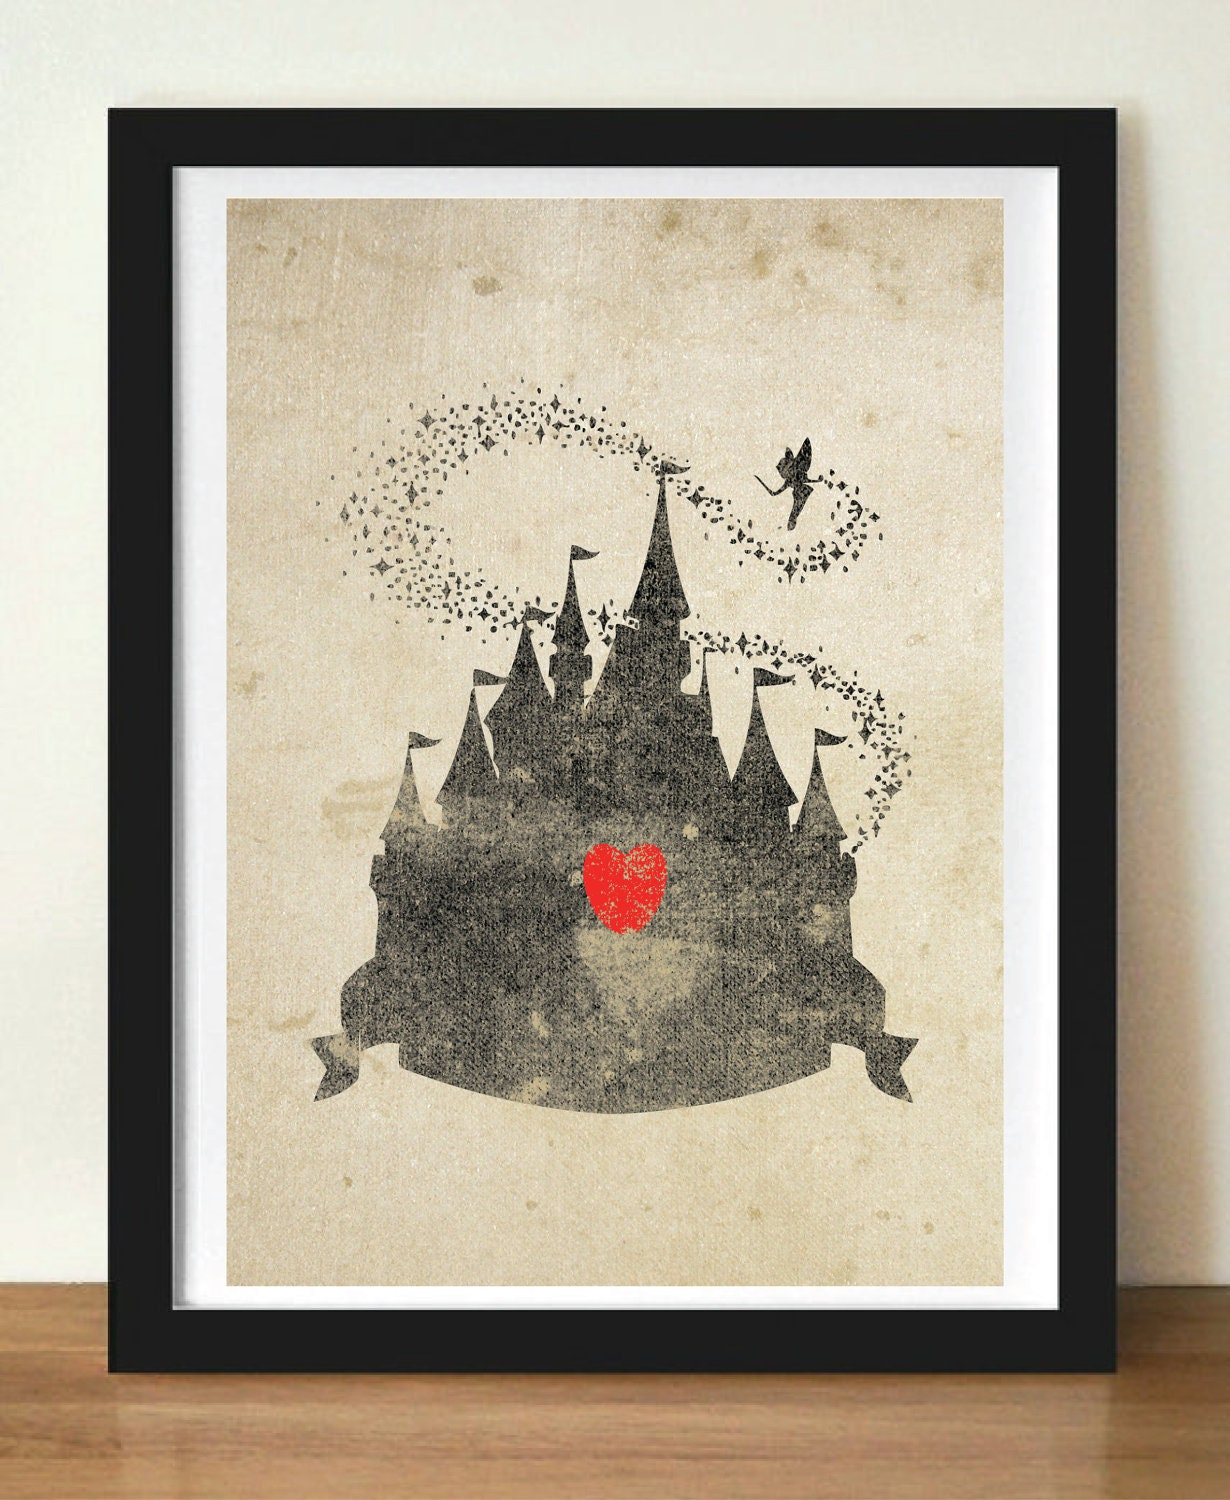 Disney Castle Inspired Silhouette 5x7 Art Print With Heart